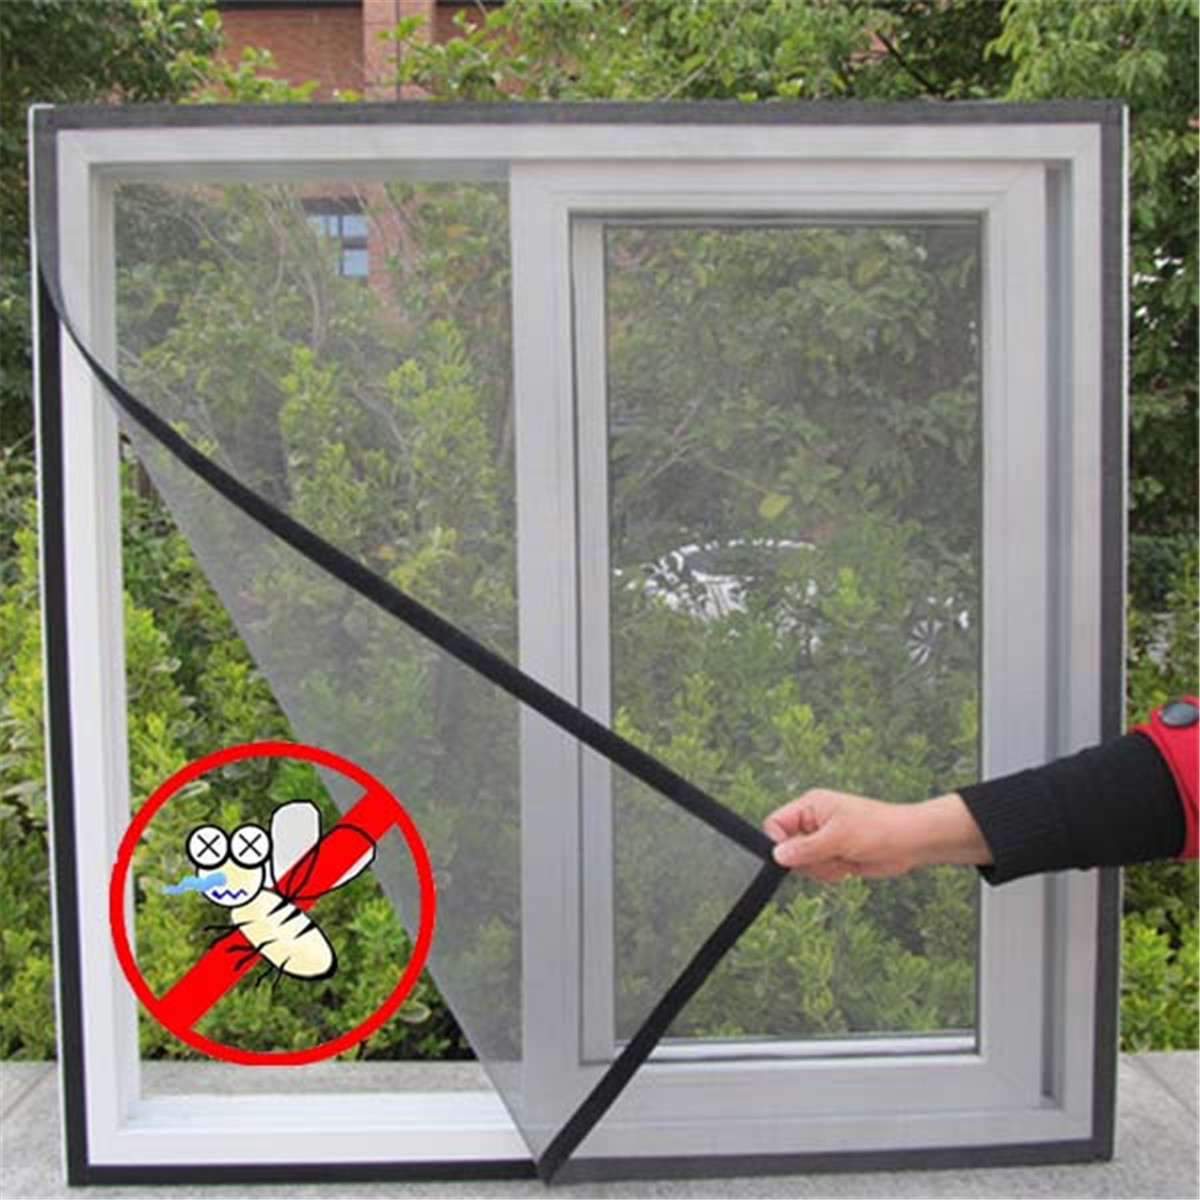 Diy Mosquito Net For Windows Window Insect Screen Mesh Net Bug Fly Mosquito Netting